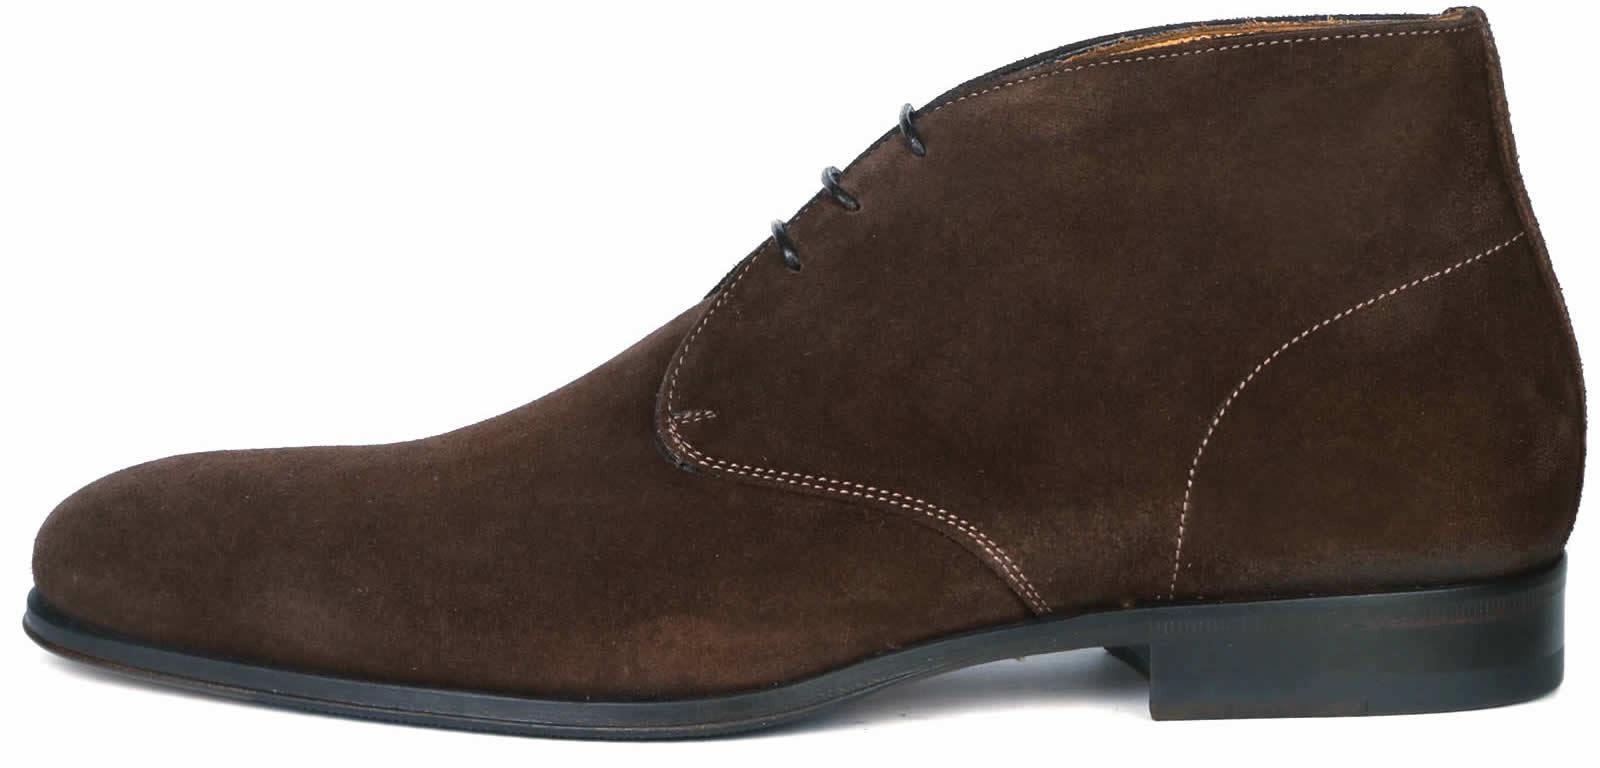 Hamilton Chukka Boot - Brown Suede